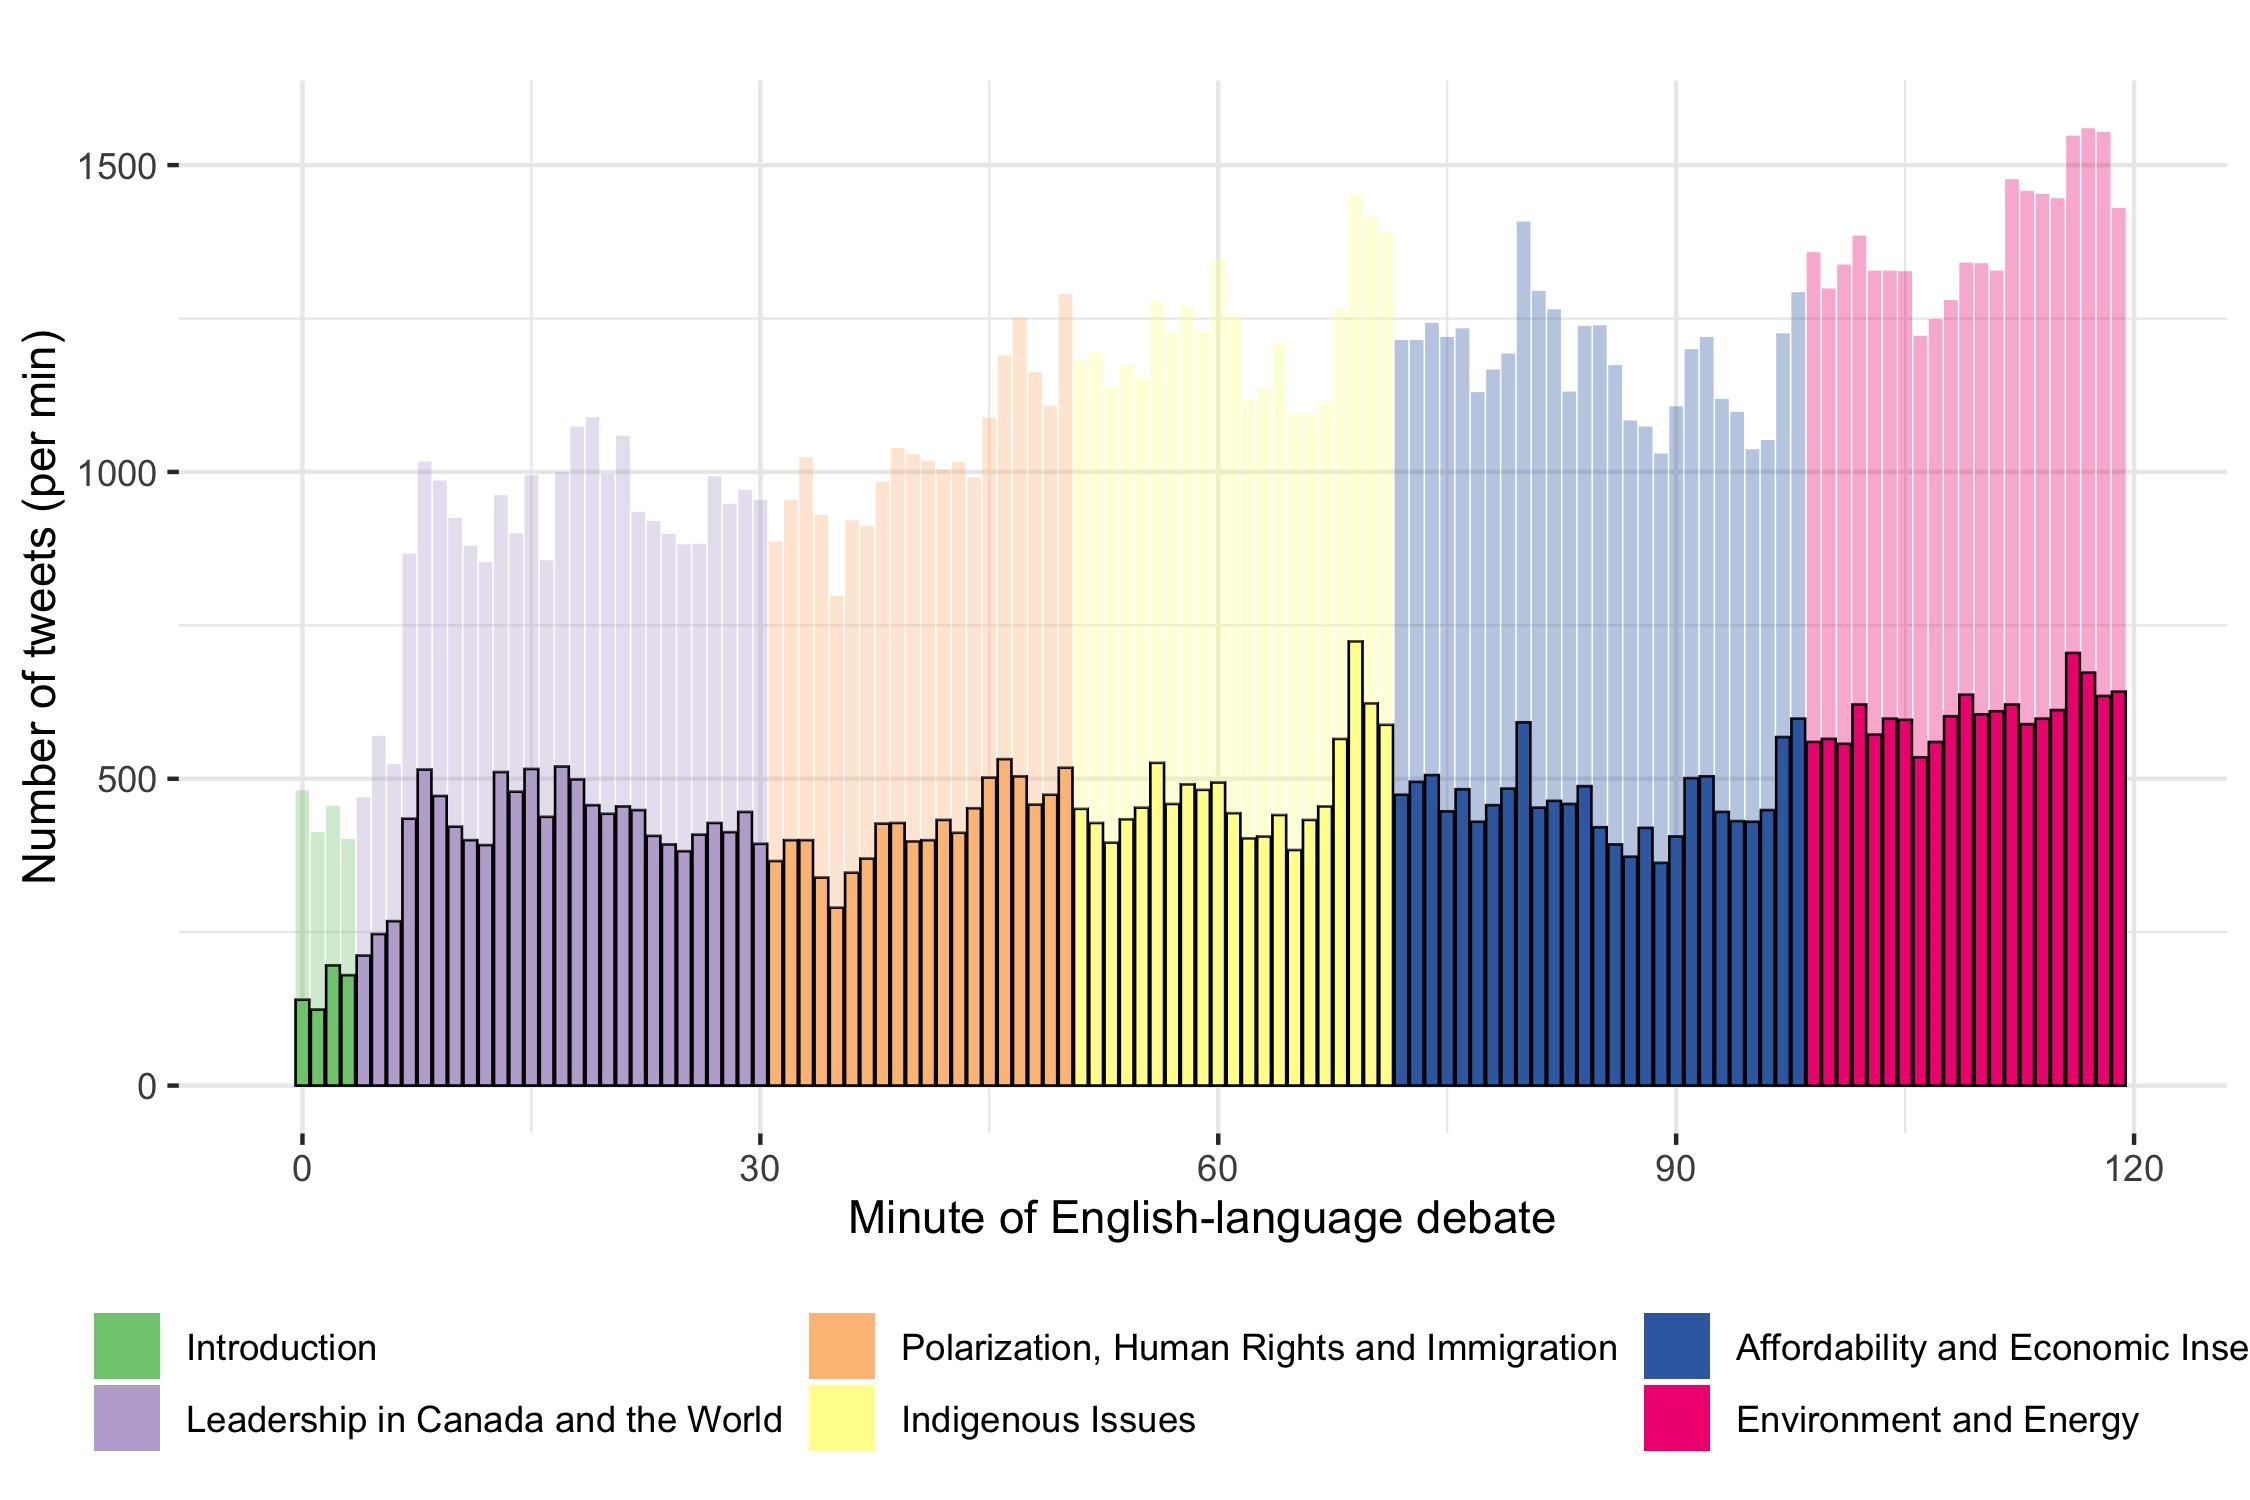 Figure 3: Debate-related Twitter activity during English-language debate